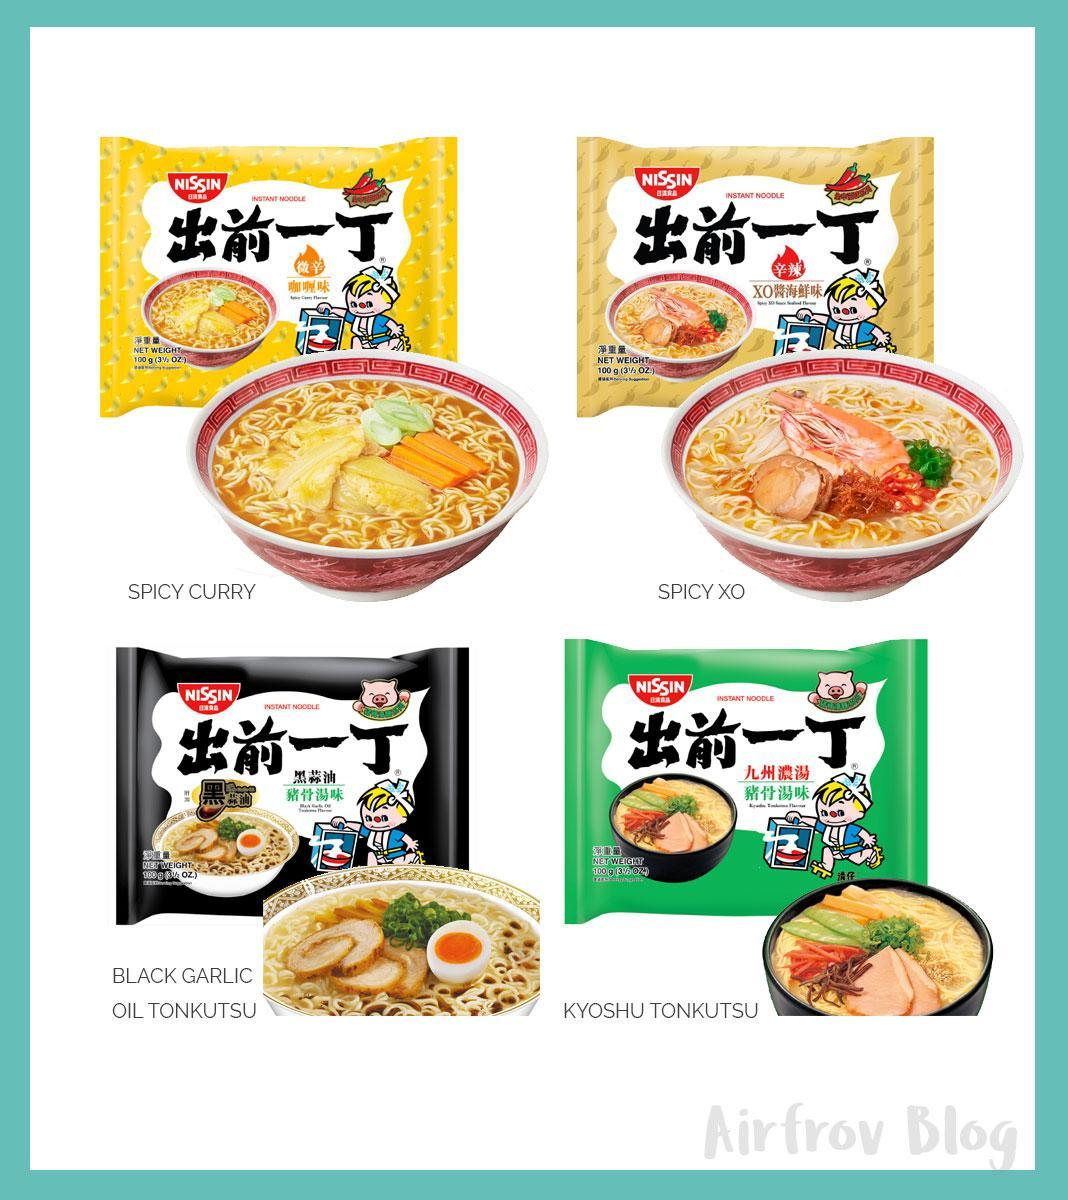 The Ultimate Guide to Hong Kong's Instant Noodles, Ramen & Pasta